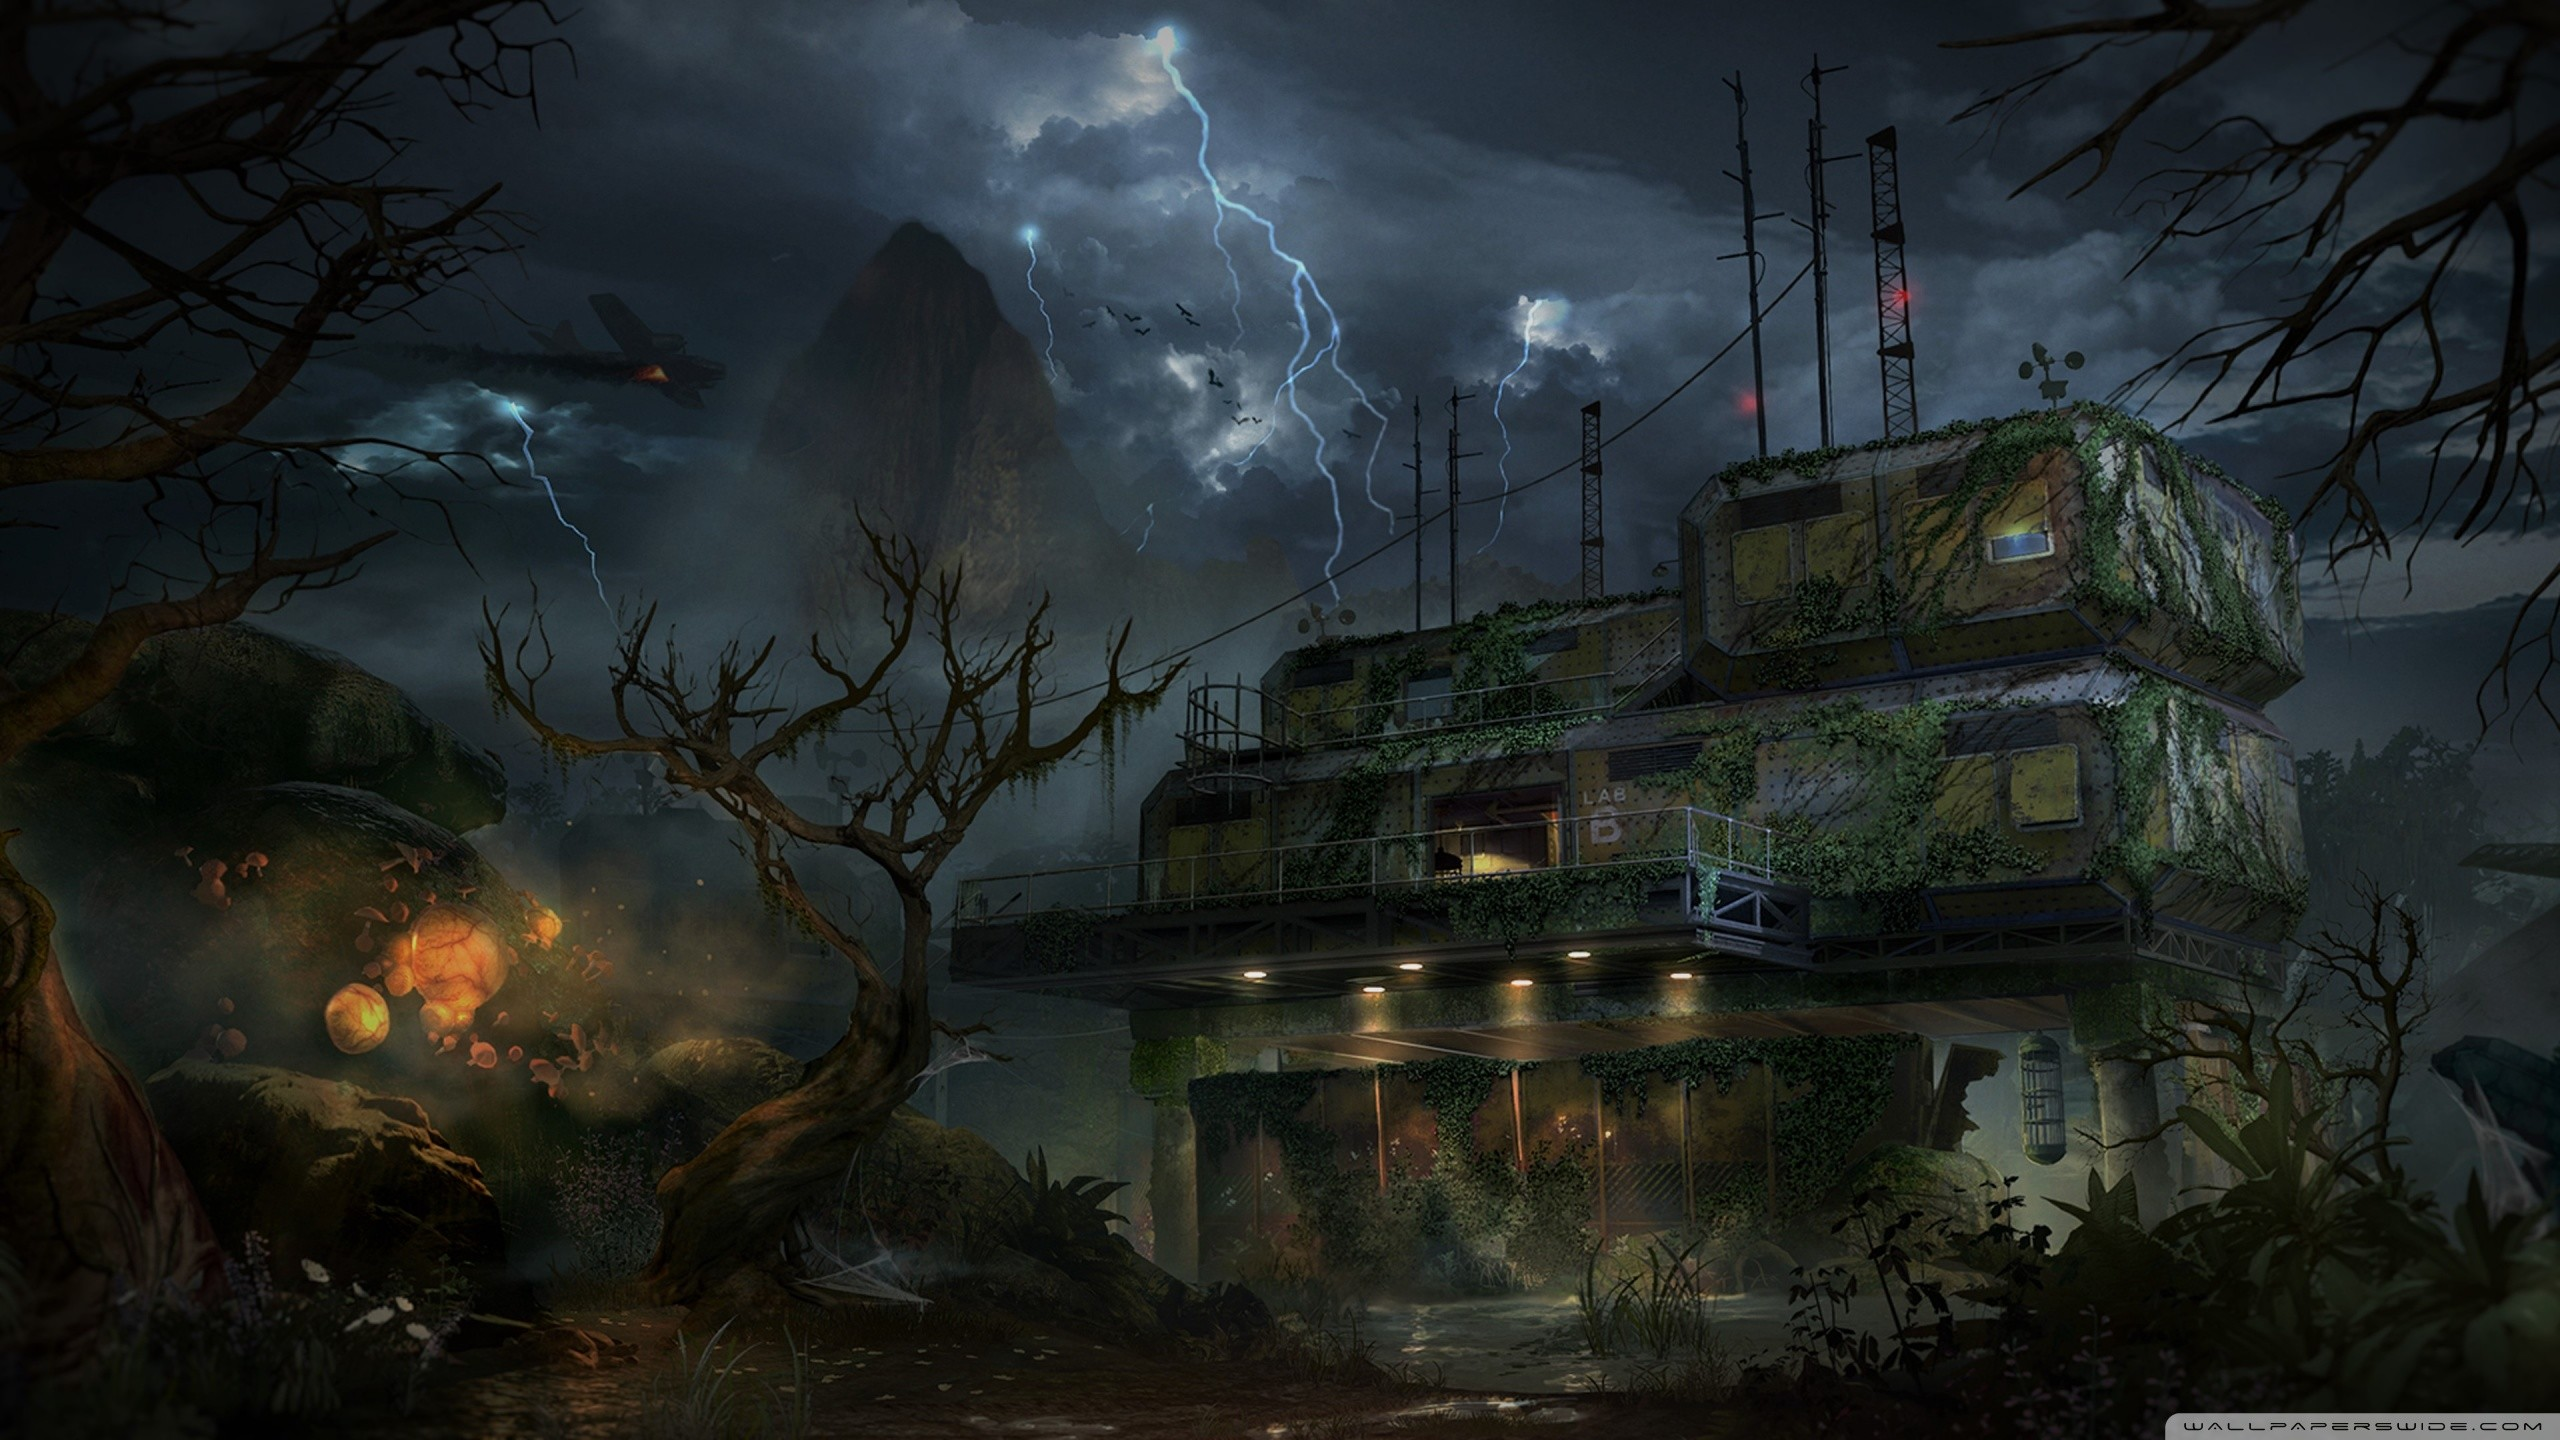 Zombies Wallpaper 1920x1080 Call of Duty Zombies W...